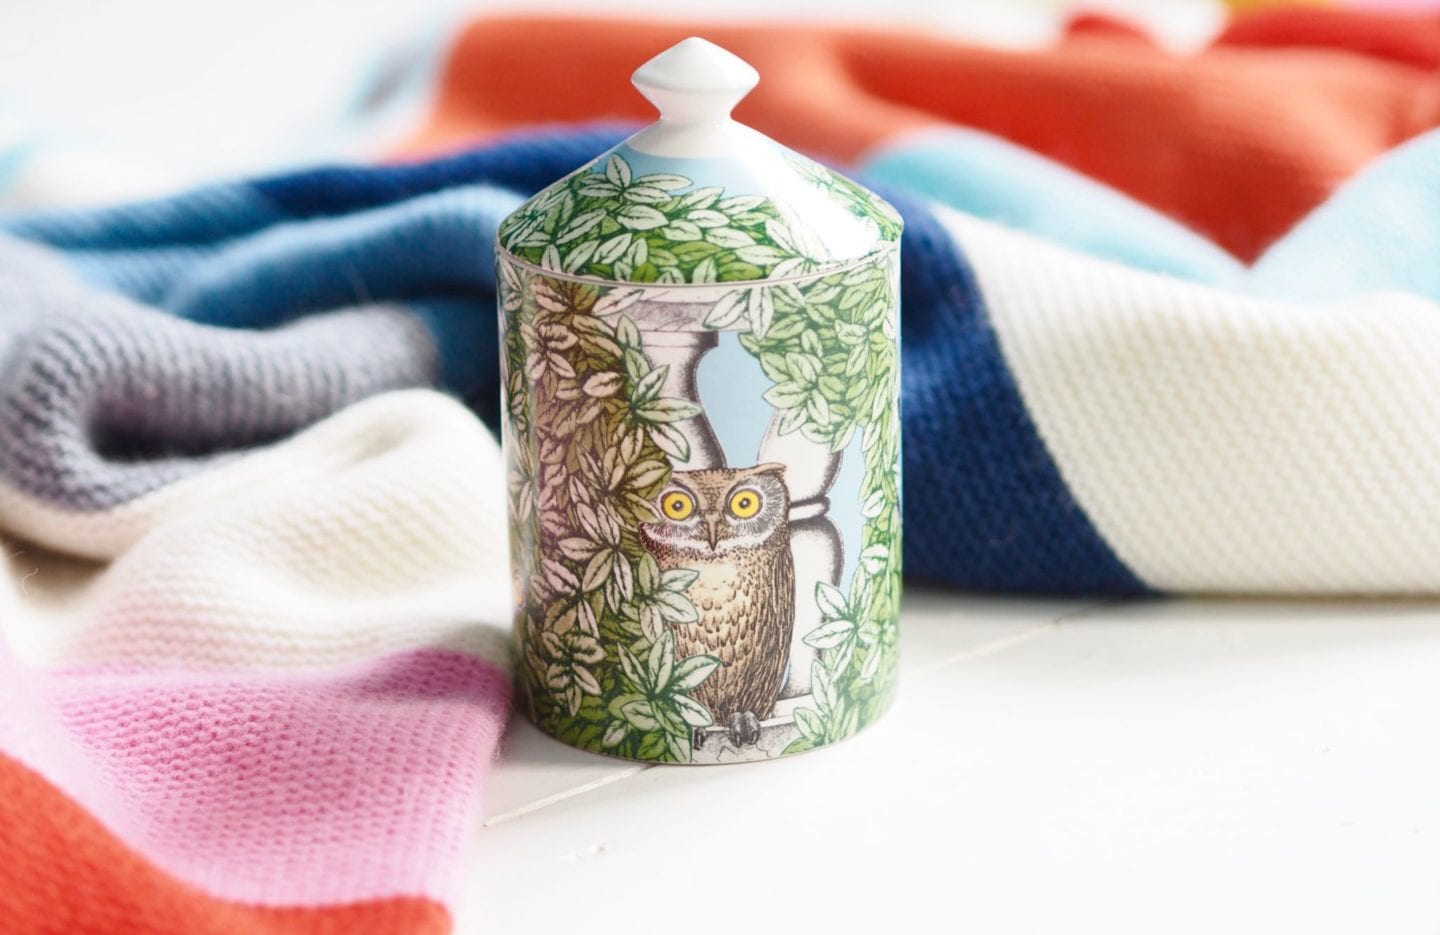 Fornacetti-Candle owl print candle